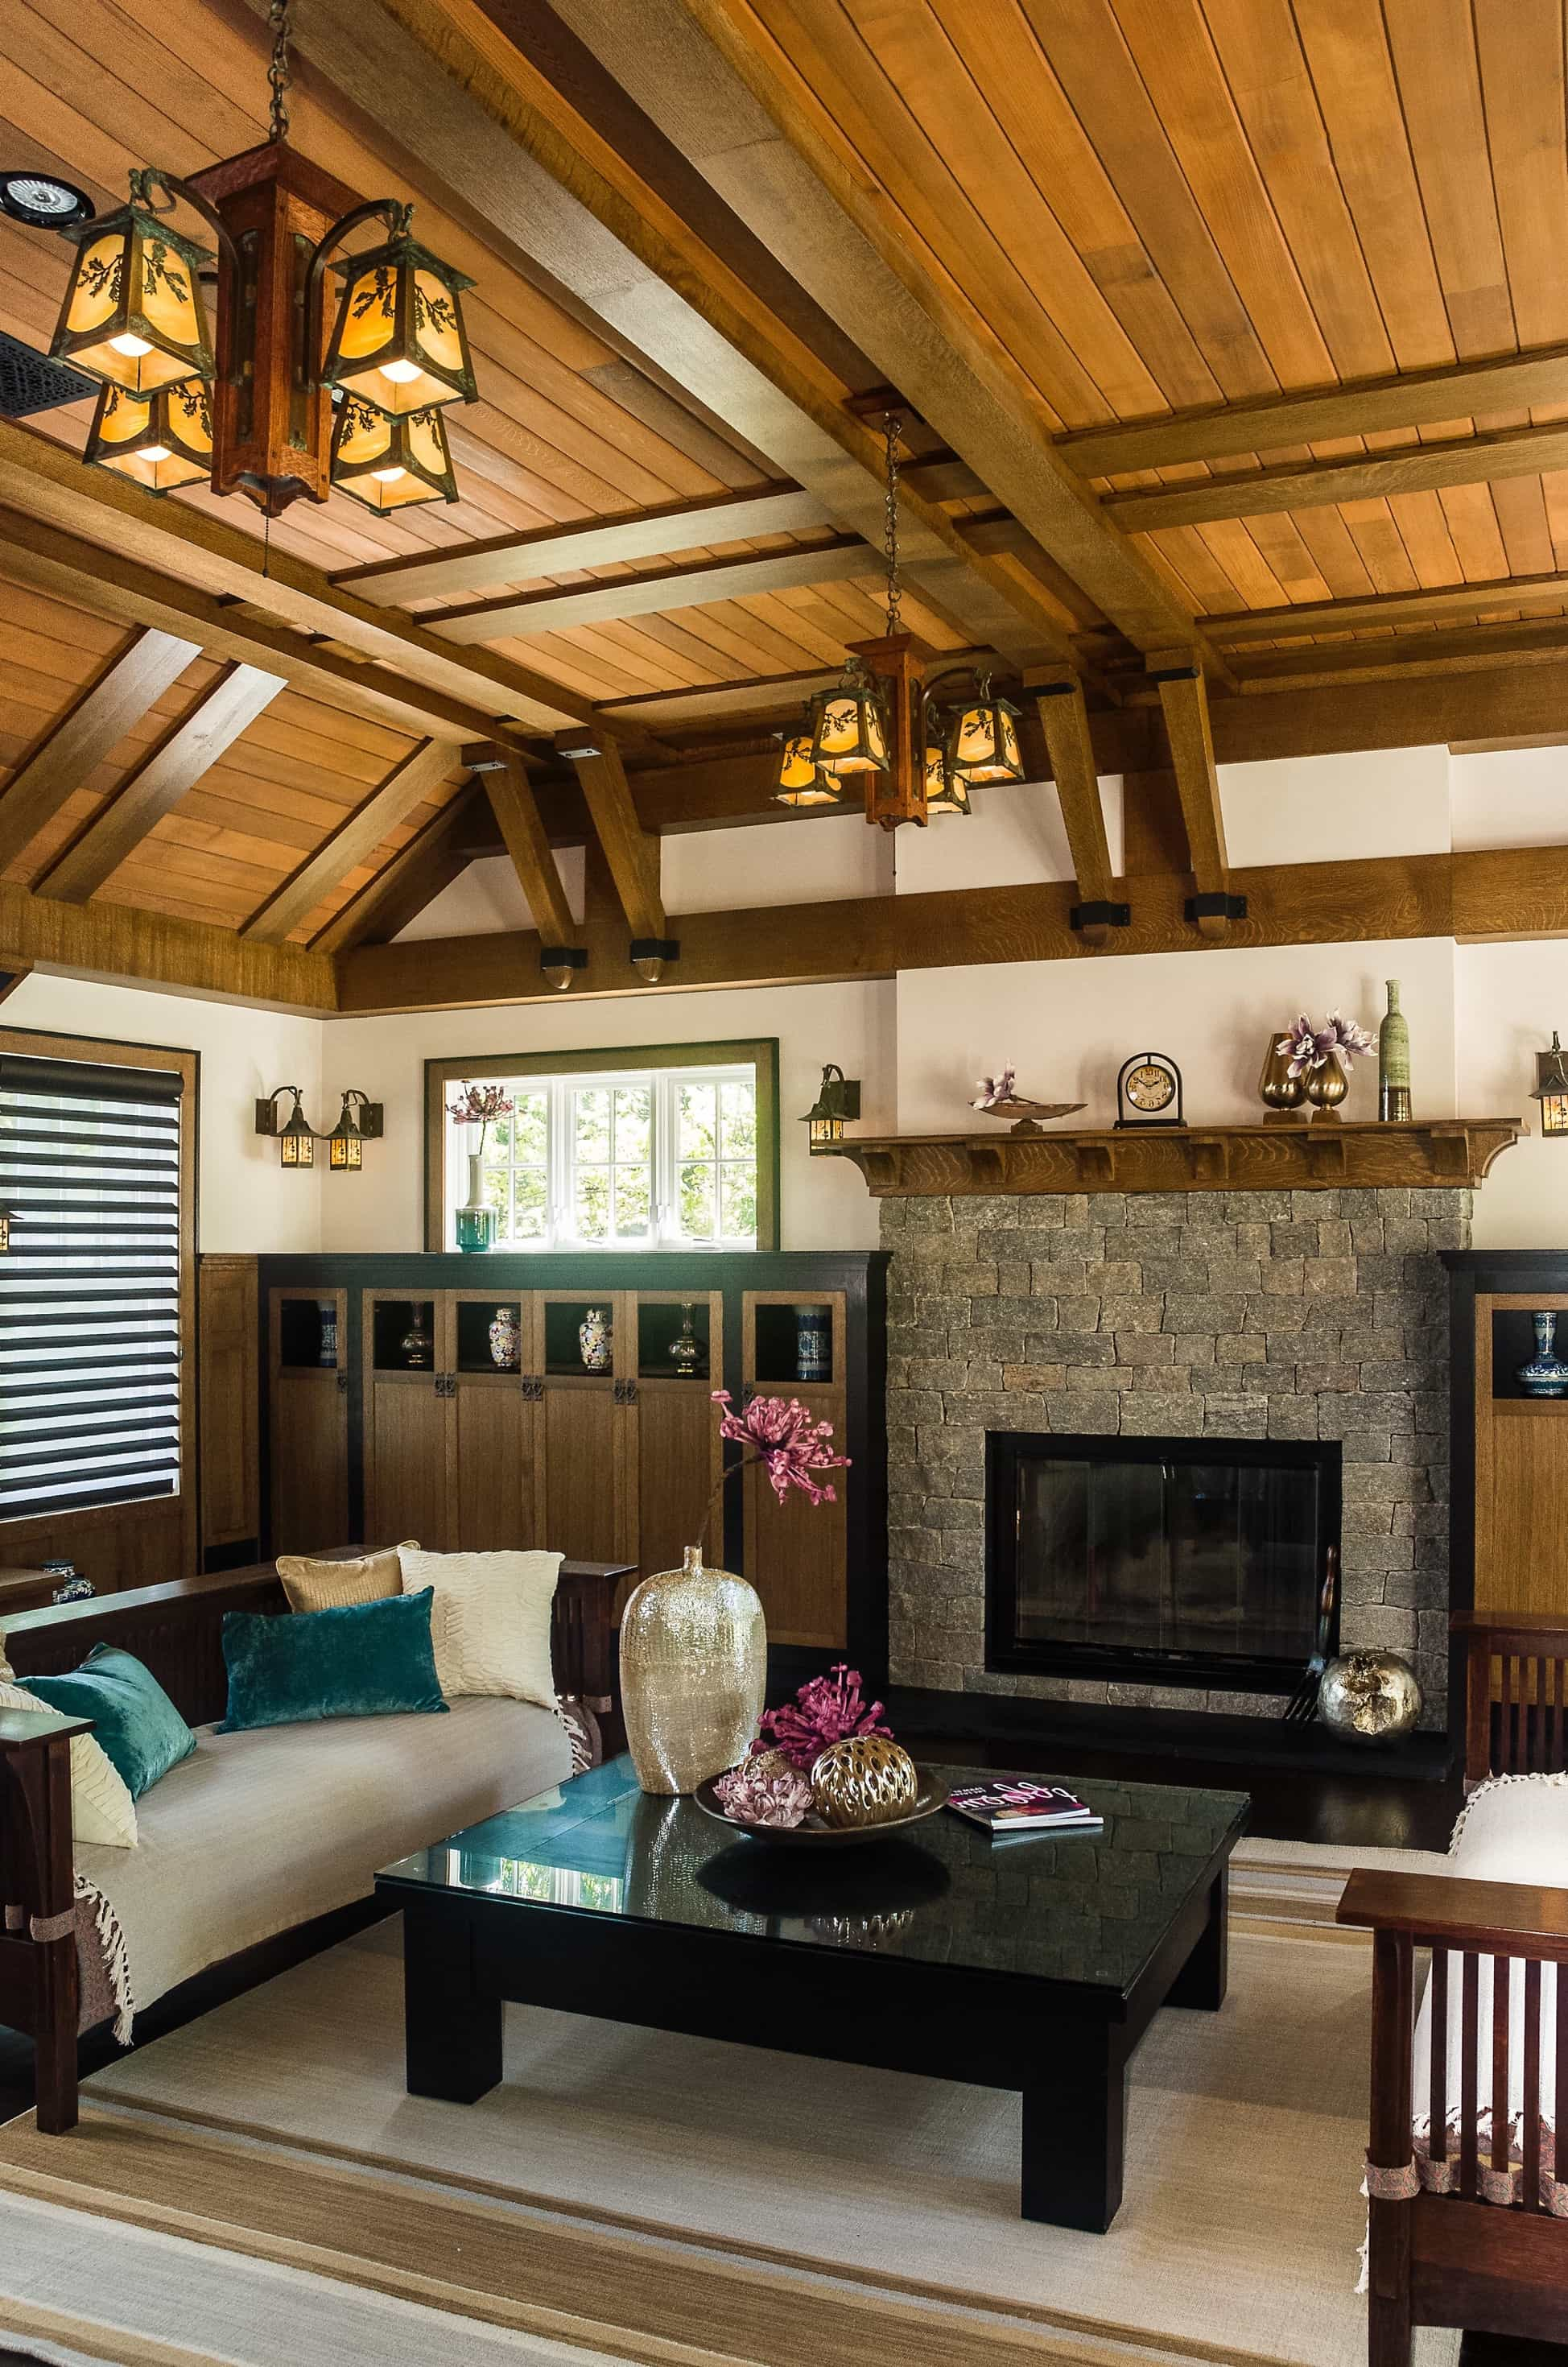 Featured Image of Rustic Asian Living Room With Wood Plank Ceiling